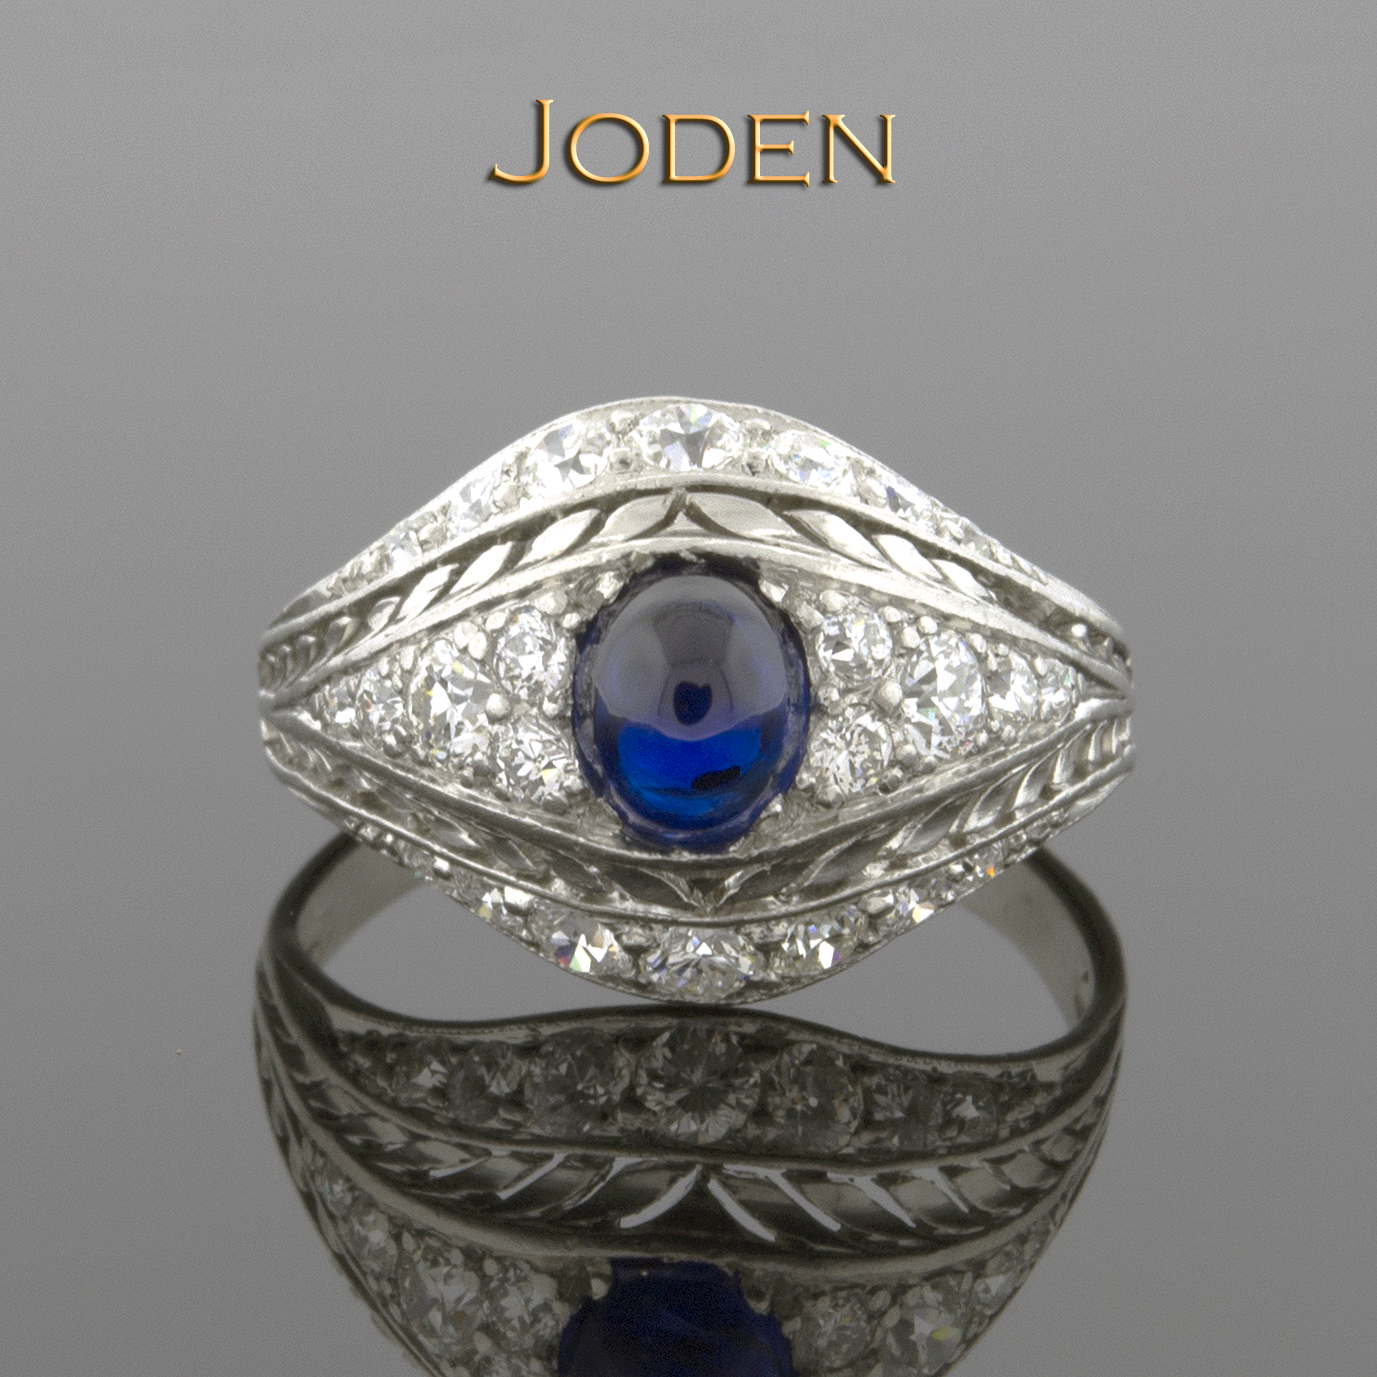 This ring is unique in so many ways with open details in a wheat pattern, bright diamonds and a beautiful blue cabochon sapphire. The center holds one high cabochon sapphire that measures approximately 6.0 x 4.5 millimeters with a weight of approximately 1.00 carat. Accenting the design are 24 old European cut diamonds that have a weight of approximately .55 carat total weight. These diamonds have an average color grade of G-H and an average clarity grade of VS(1-2).